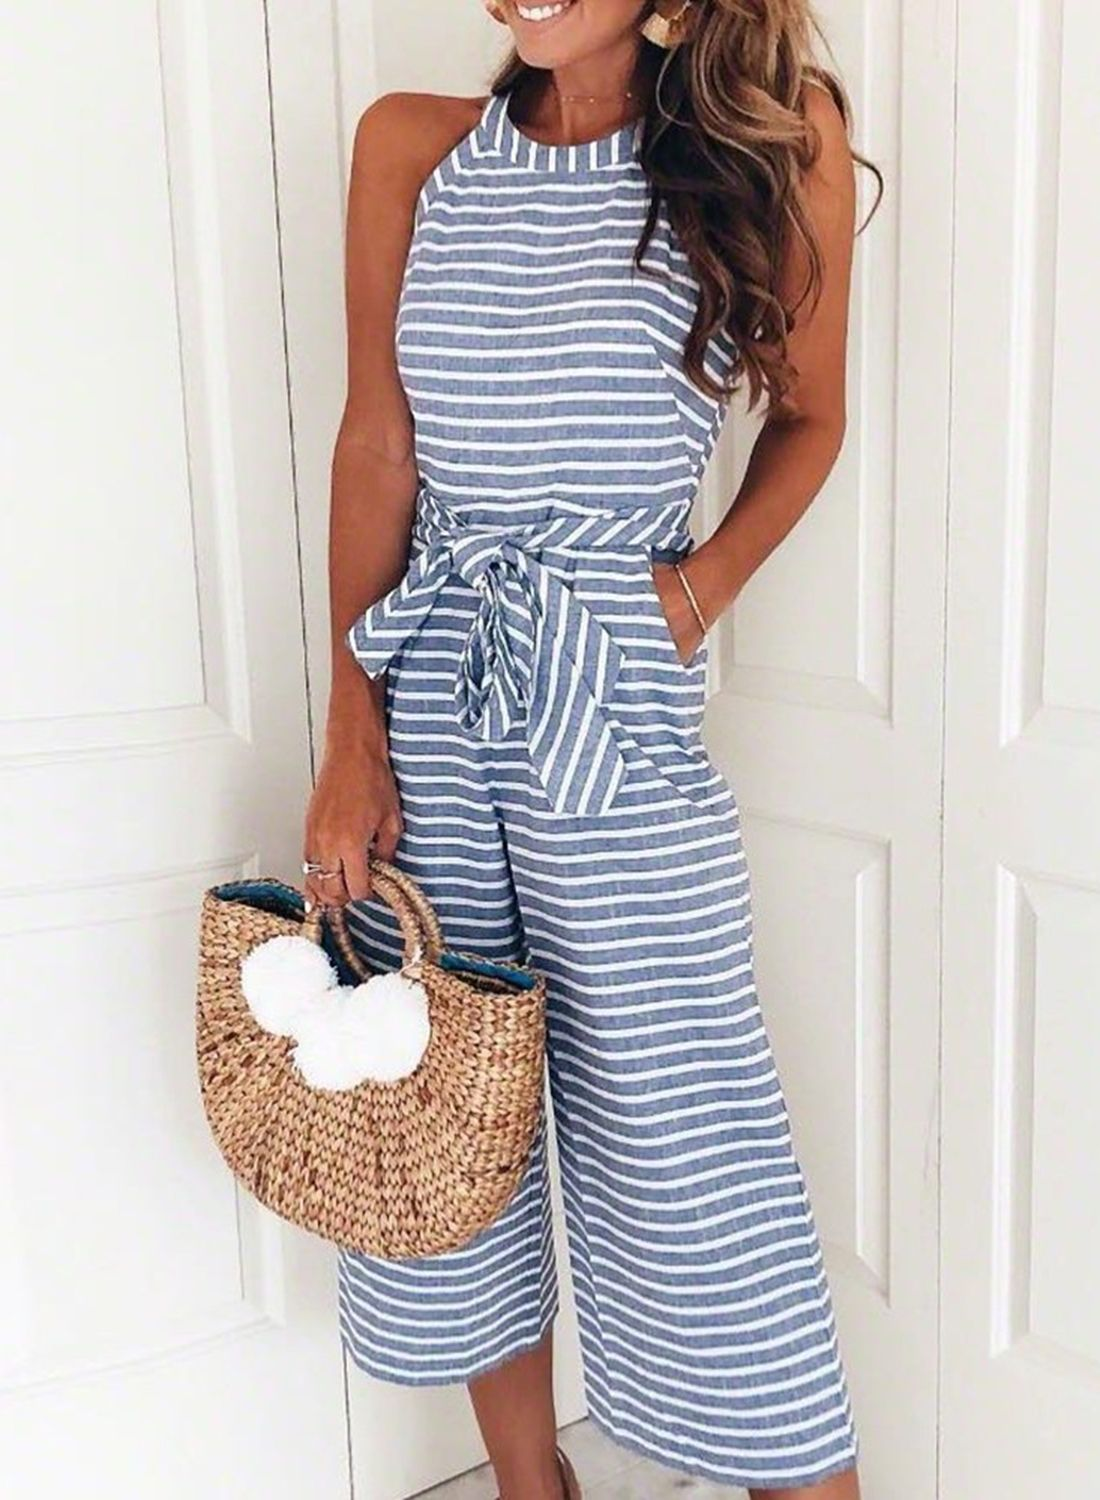 c0465f16a7d Up your style game this season in a jumpsuit.Find a wide range of women s  jumpsuit and romper style.